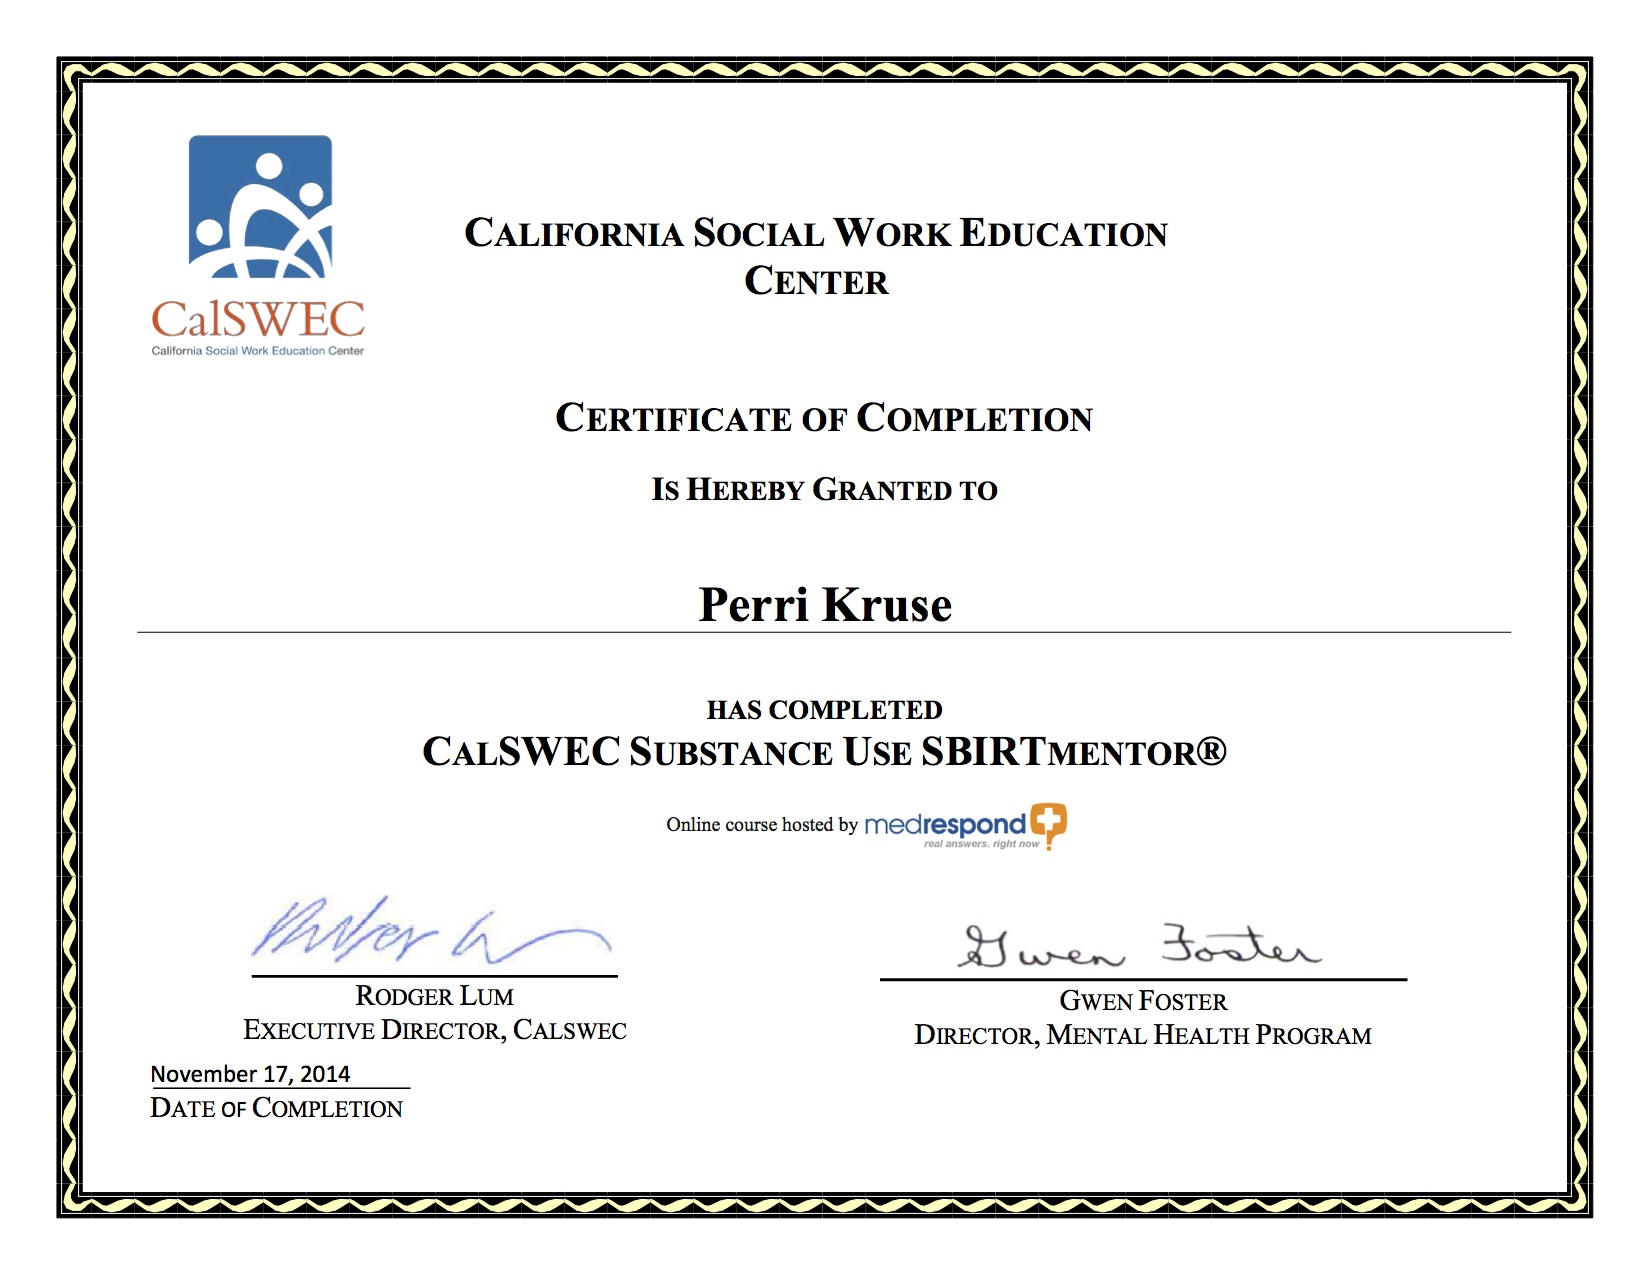 Perri kruse certifications msw lgsw acsw lapd ucla child certificate sbirt certificate xflitez Gallery